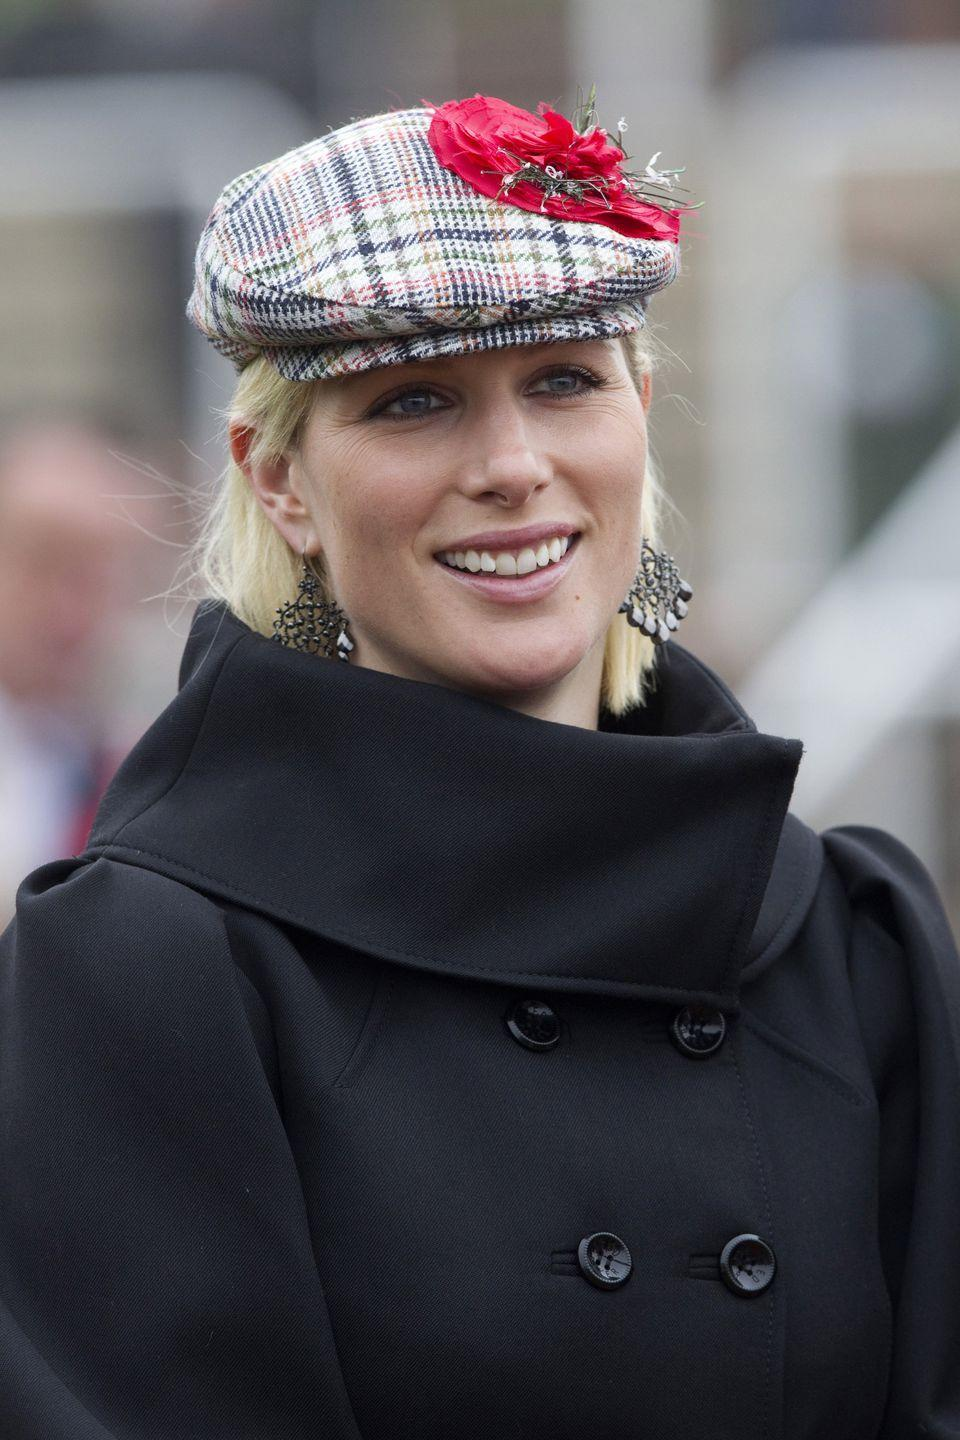 """<p>Plaid makes for a great accessory as well: <a href=""""https://www.townandcountrymag.com/society/tradition/g19460546/zara-tindall-best-style-moments/"""" rel=""""nofollow noopener"""" target=""""_blank"""" data-ylk=""""slk:Zara Tindall, the Queen's granddaughter"""" class=""""link rapid-noclick-resp"""">Zara Tindall, the Queen's granddaughter</a>, wore this plaid hat back in 2011. </p>"""